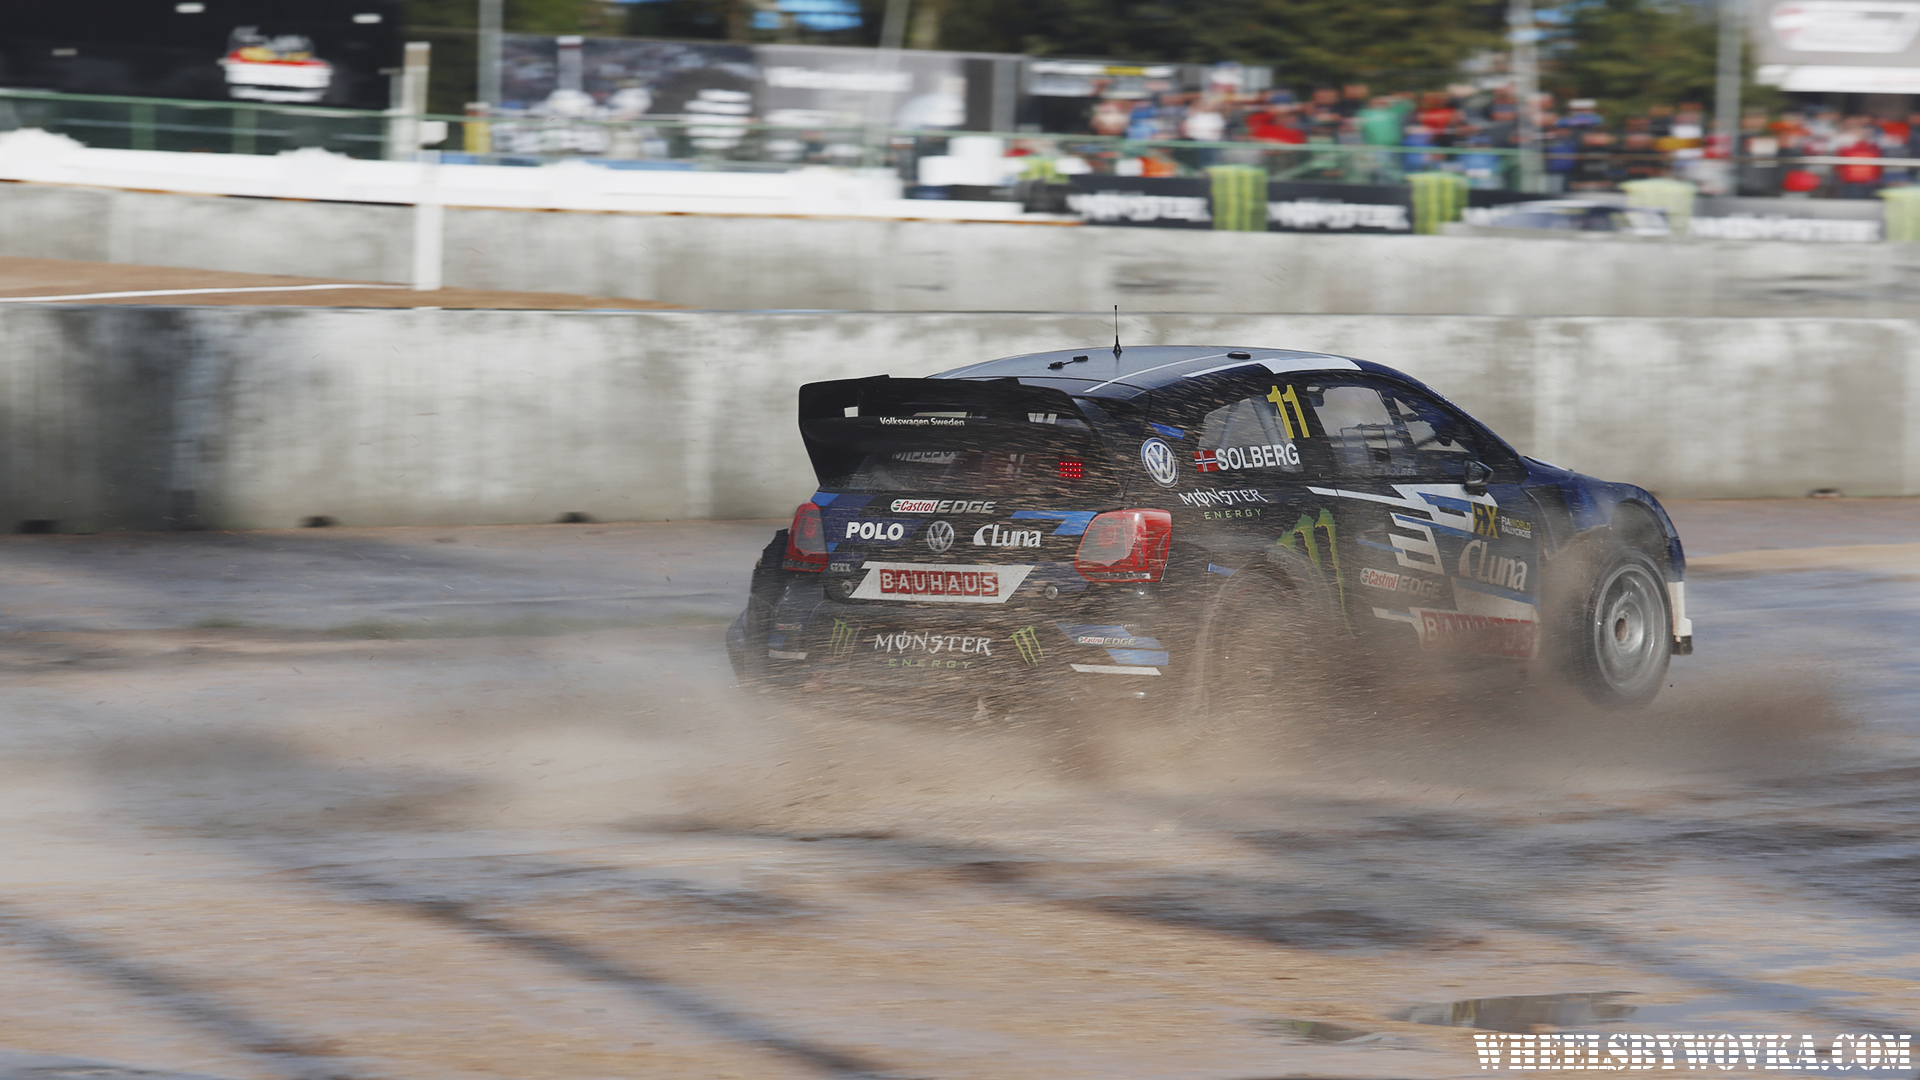 world-rx-of-latvia-by-wheelsbywovka-30